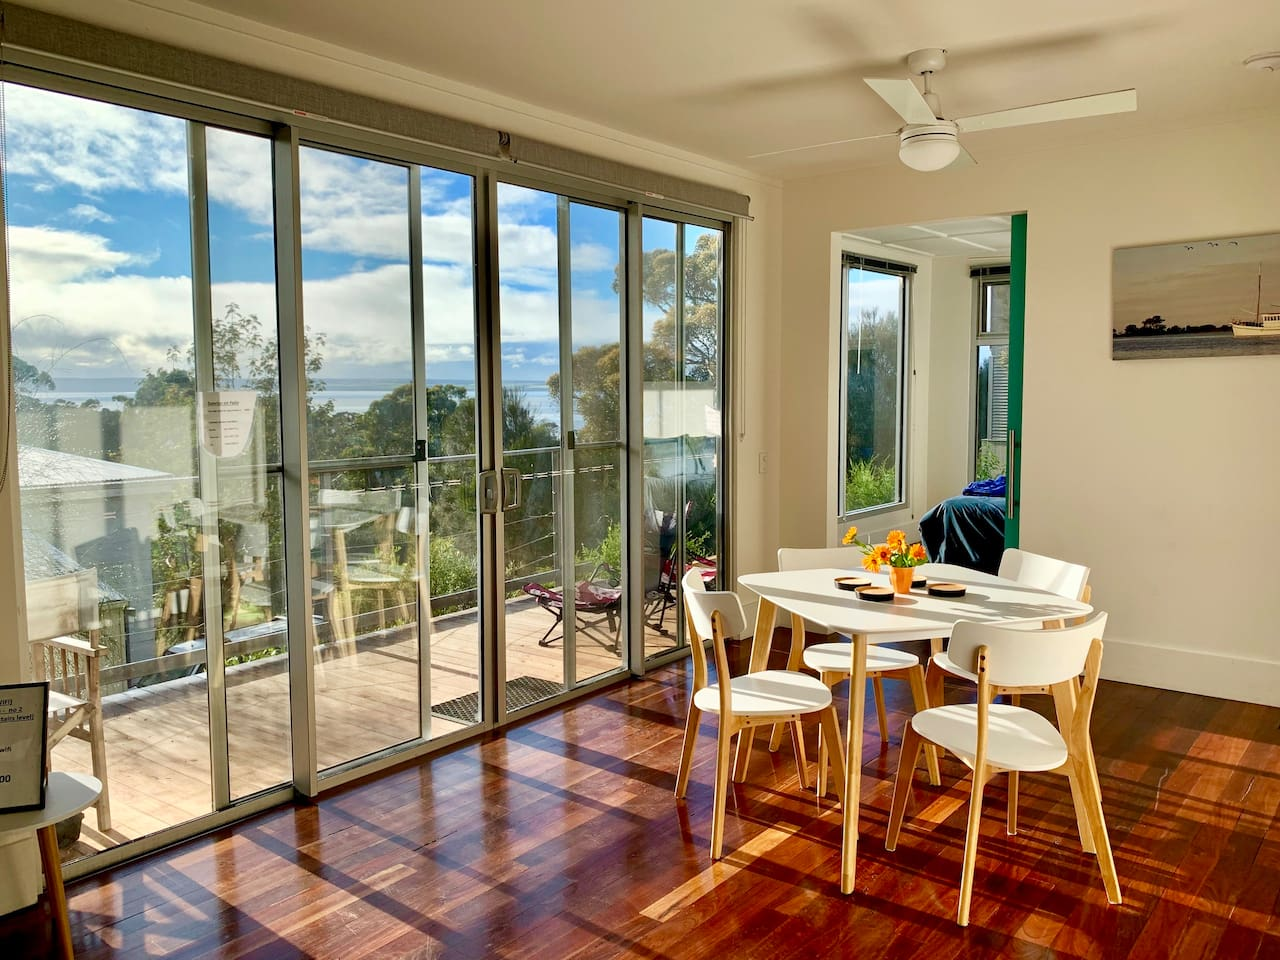 Winter sunlit self contained apartment with sea and bushland views showing dining area, decking entertainment area and entrance to master bedroom.